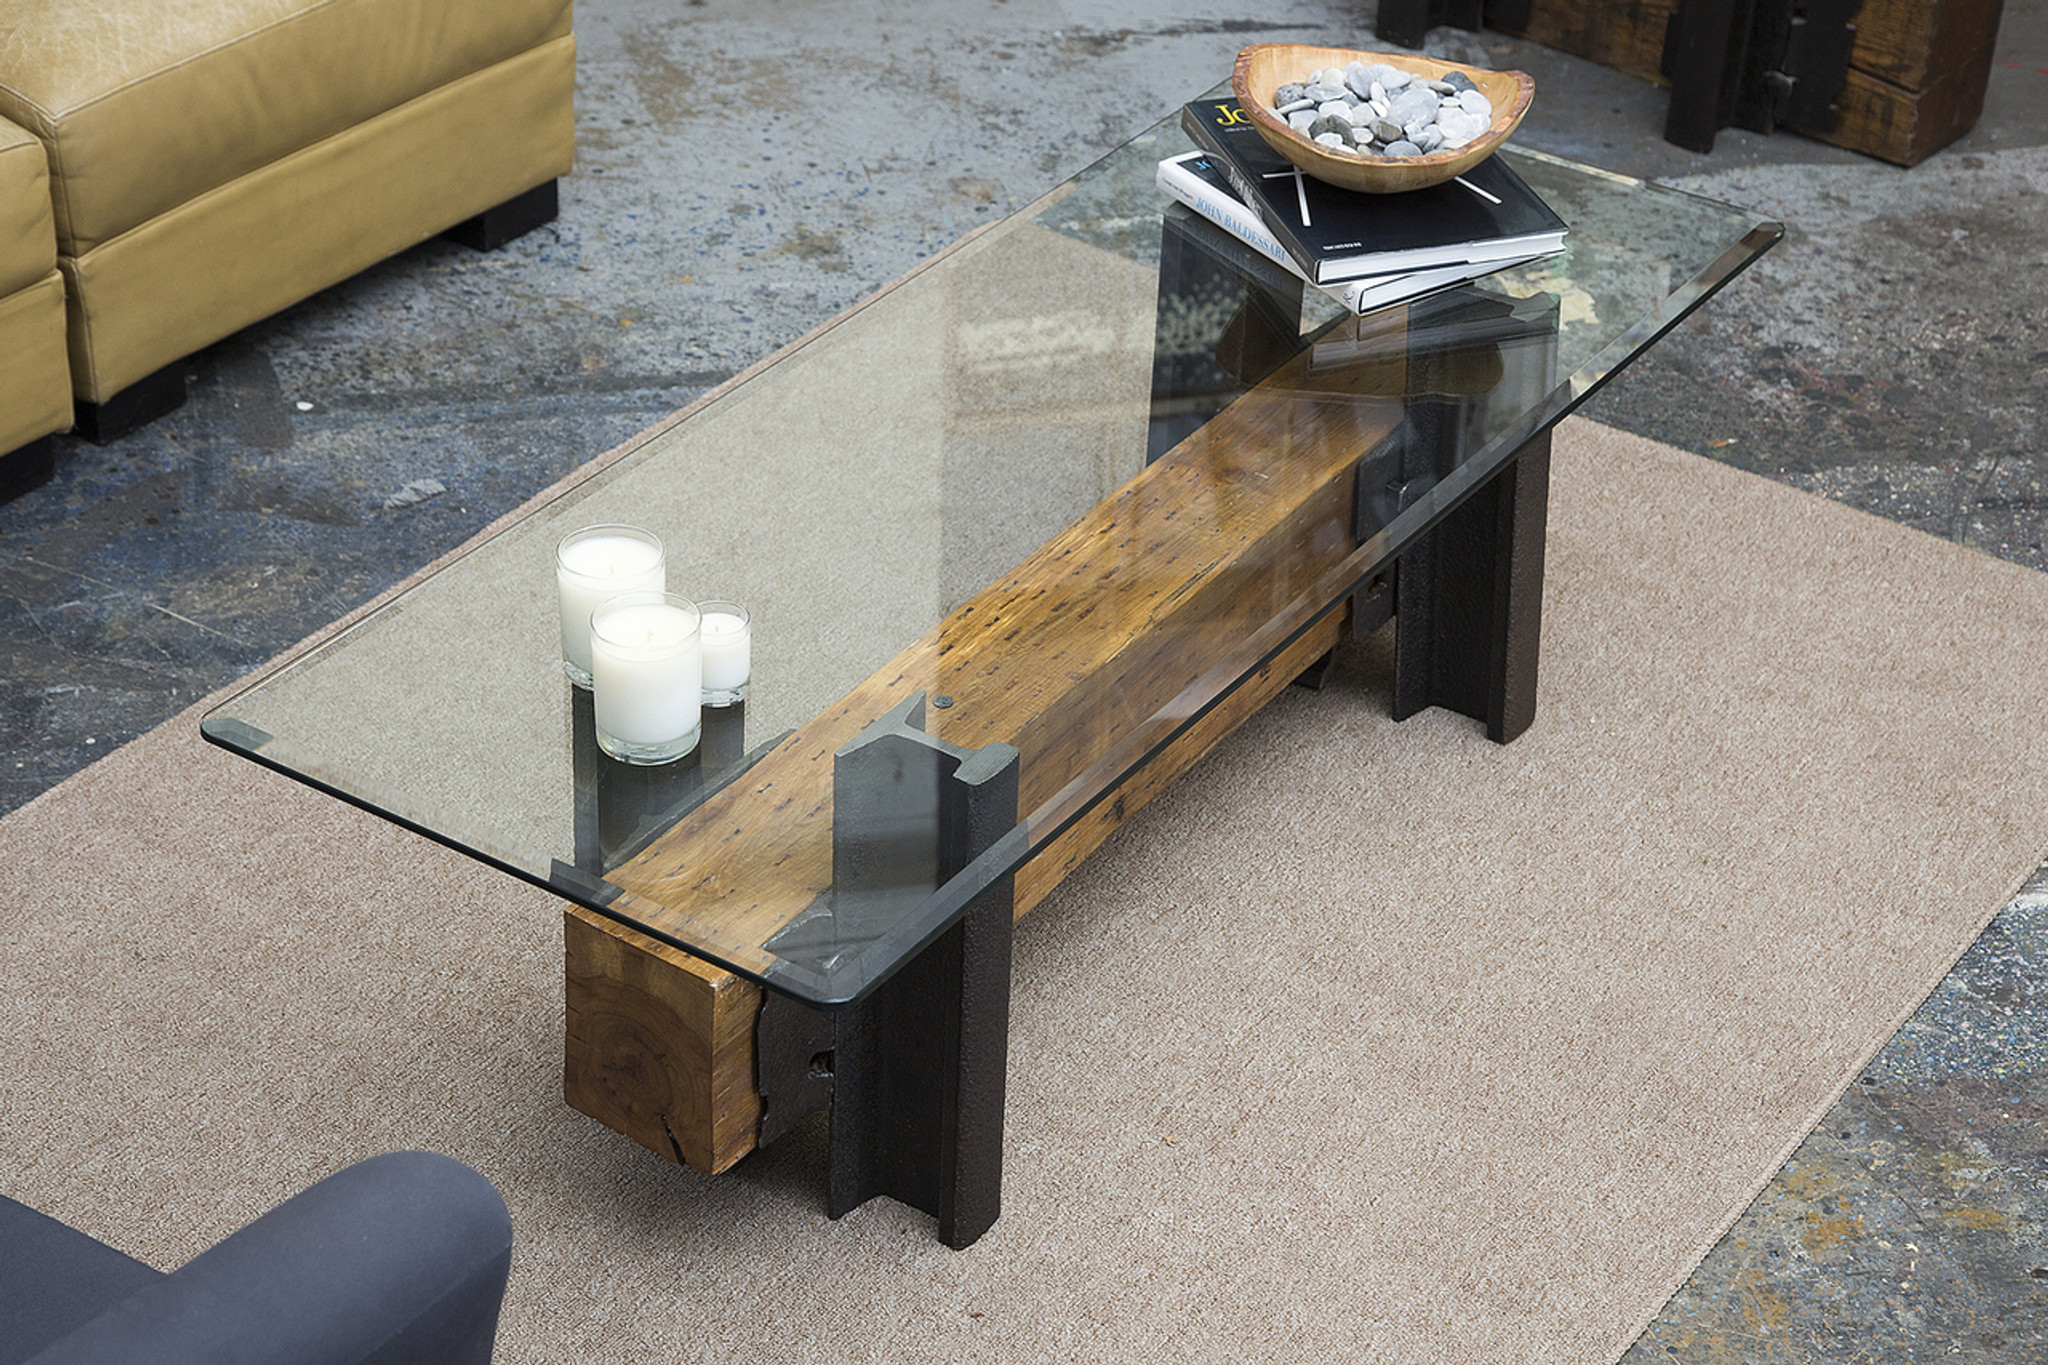 simple modern loft interior style coffee table from steel and timber with glass top